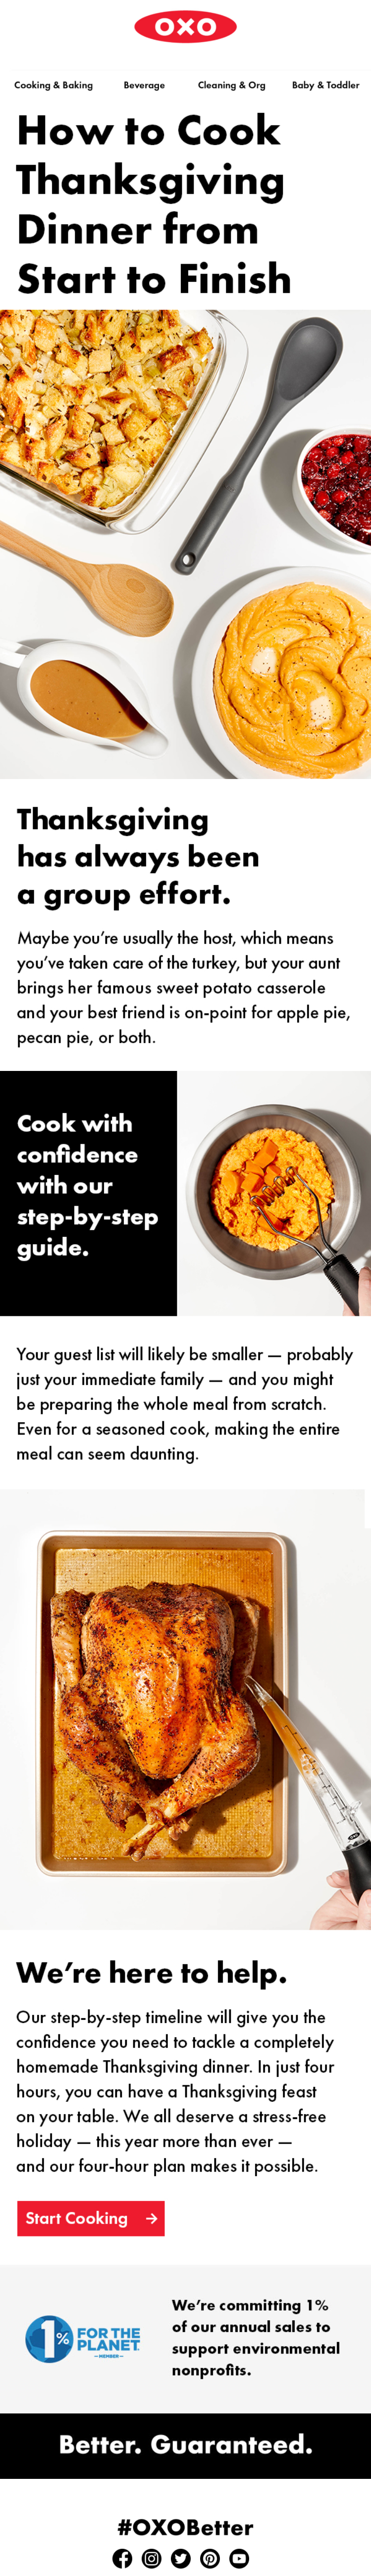 OXO-thanksgiving-dinner-in-just-4-hours